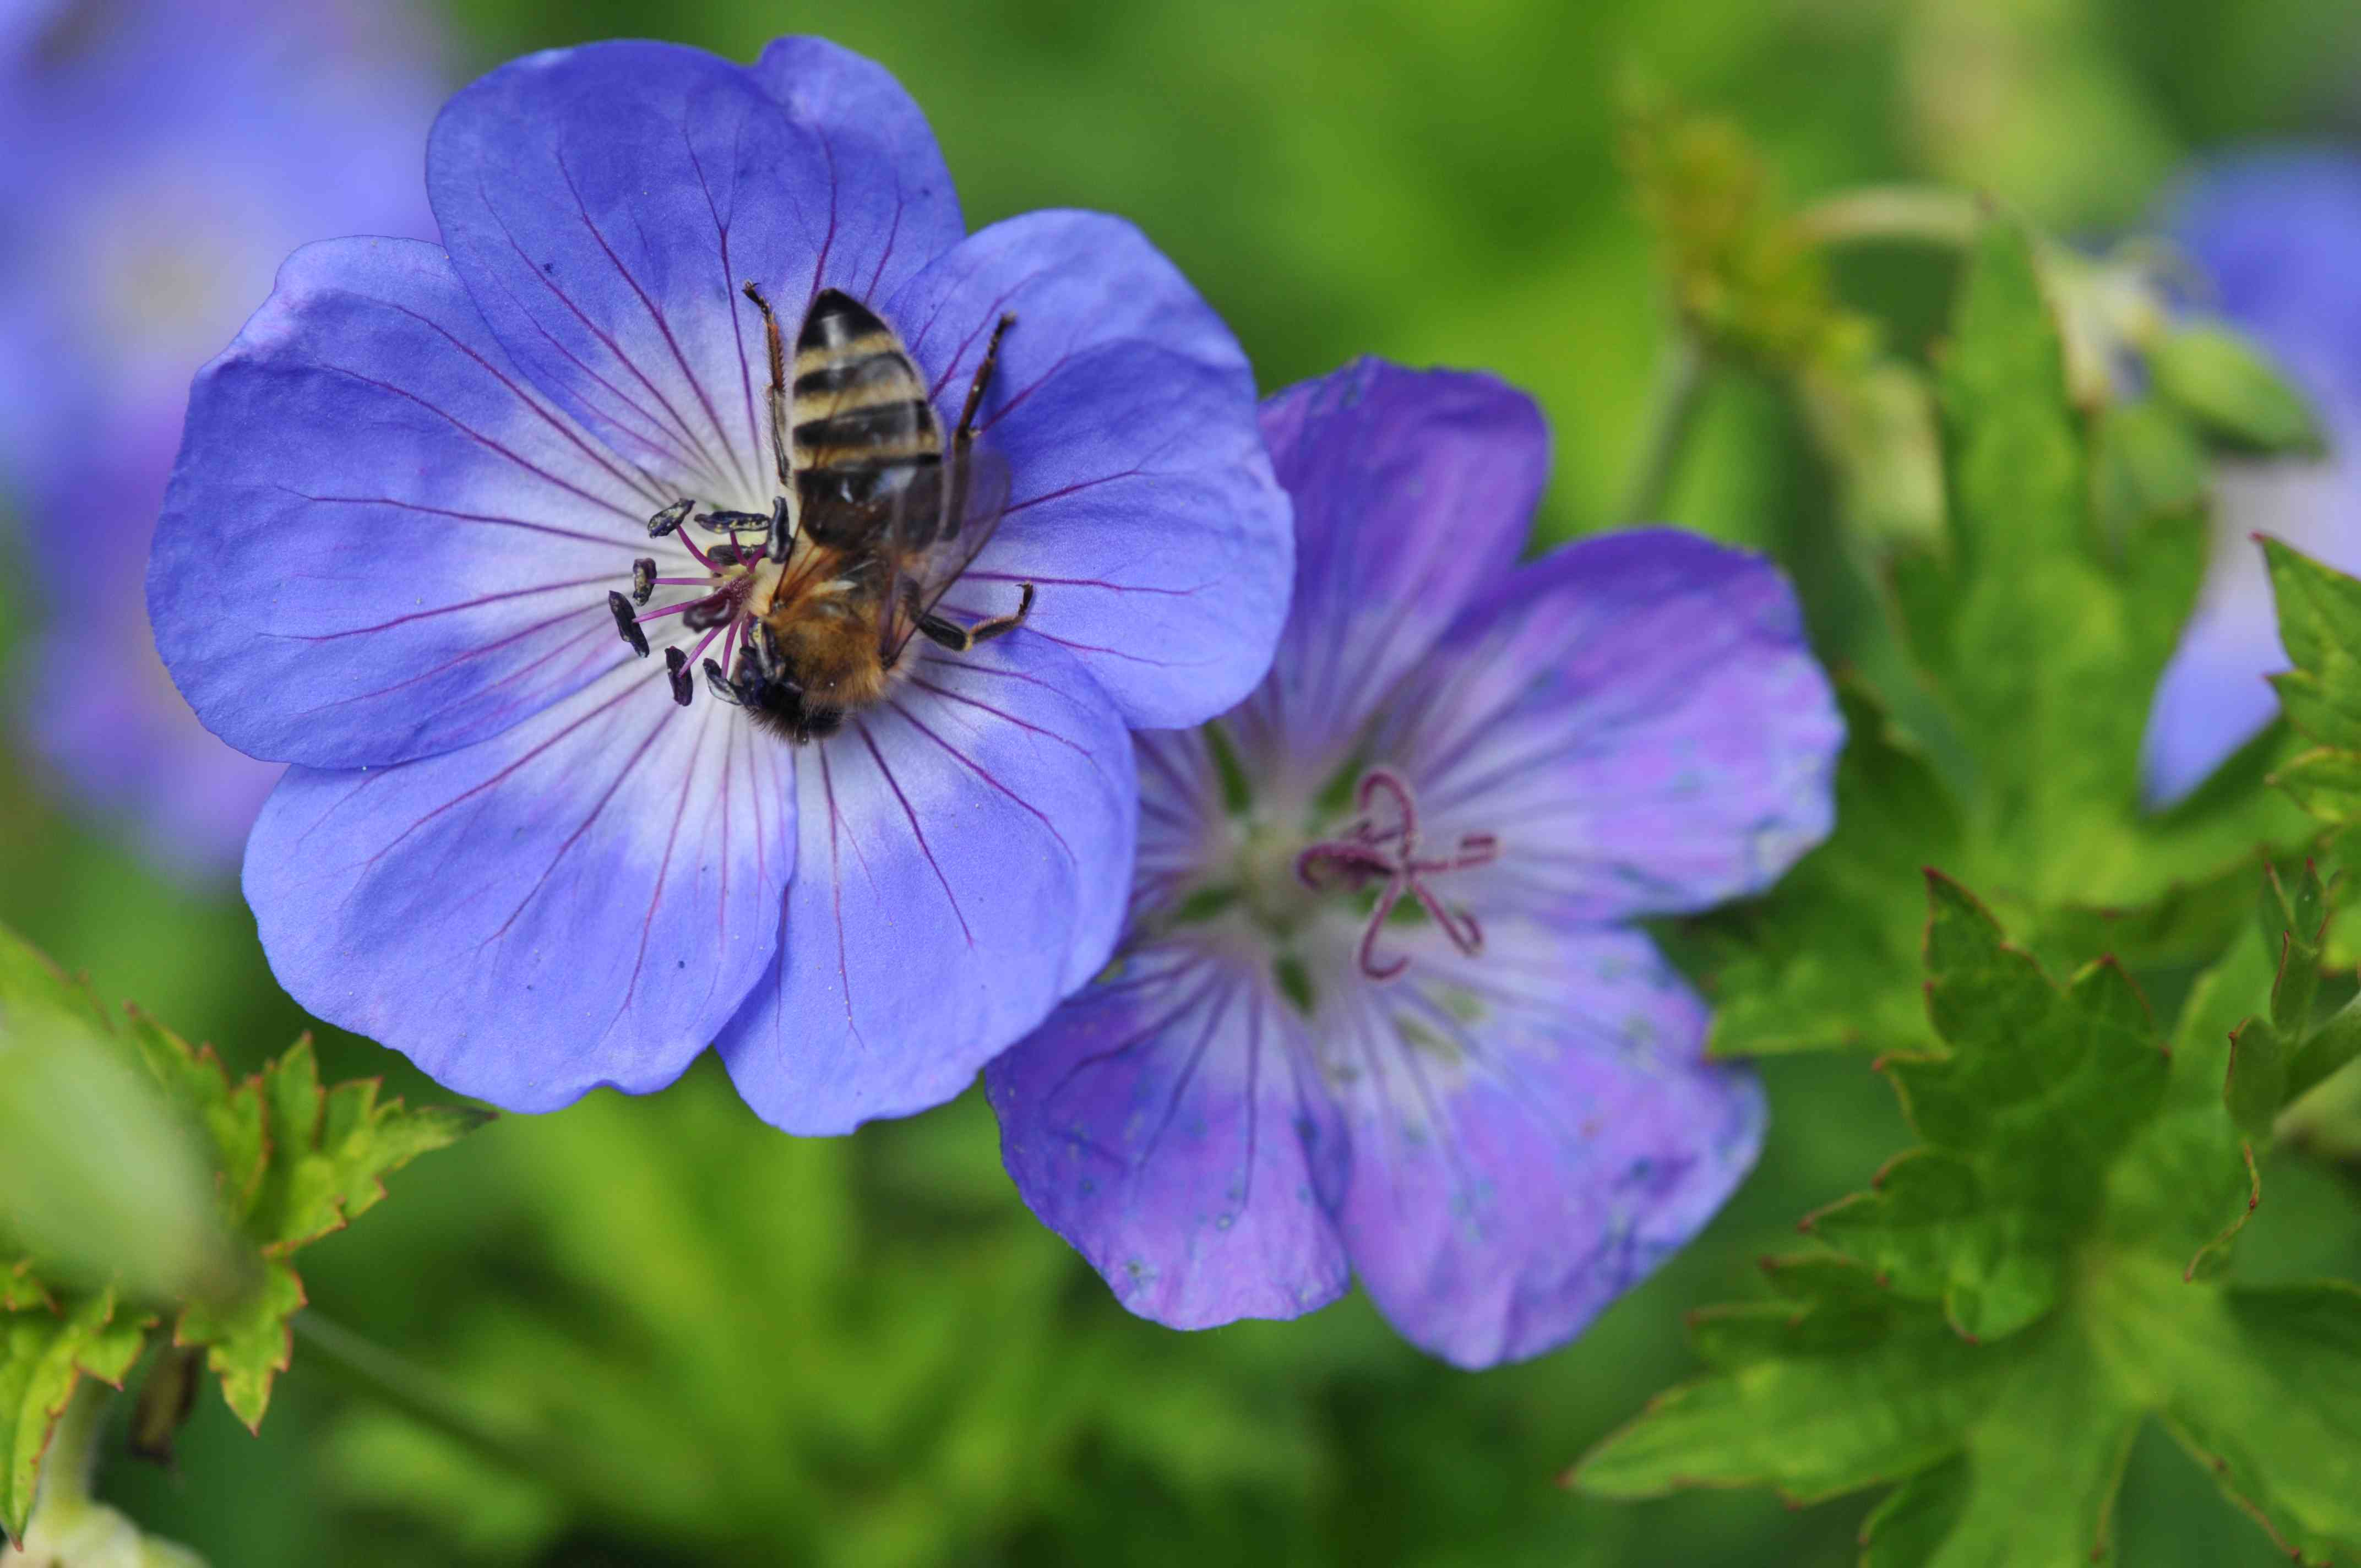 Geranium rozanne purple-blue flowers with bee in middle closeup